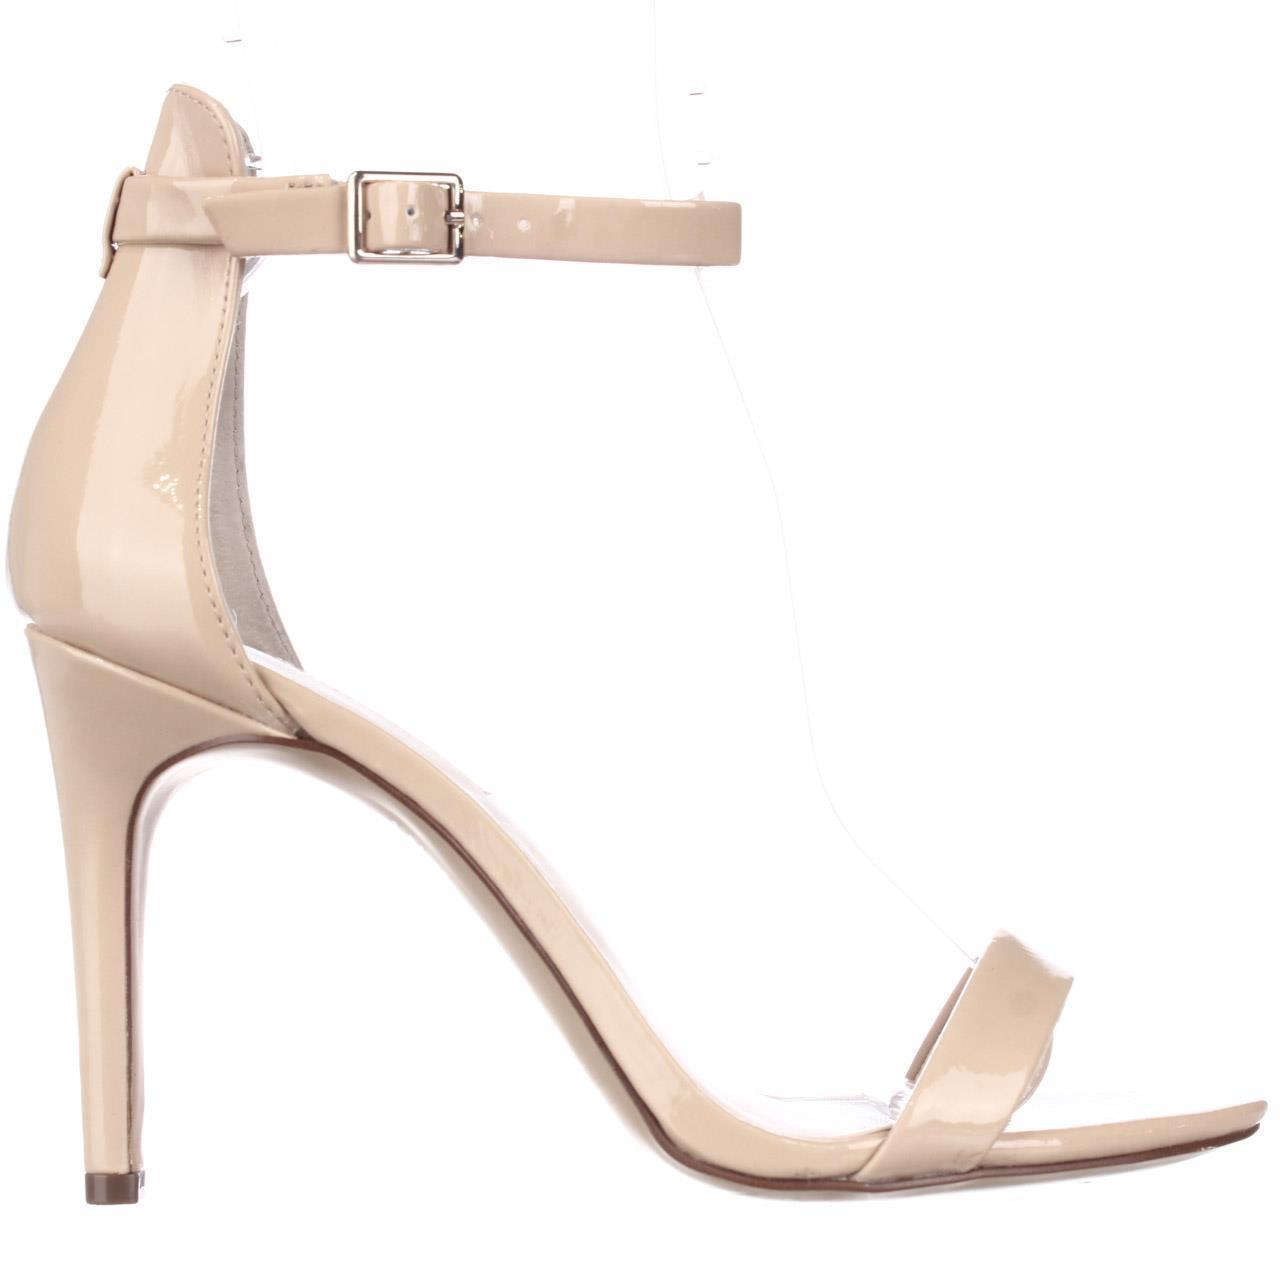 Womens I35 Roriee Ankle Strap Dress Sandals - Summer Nude